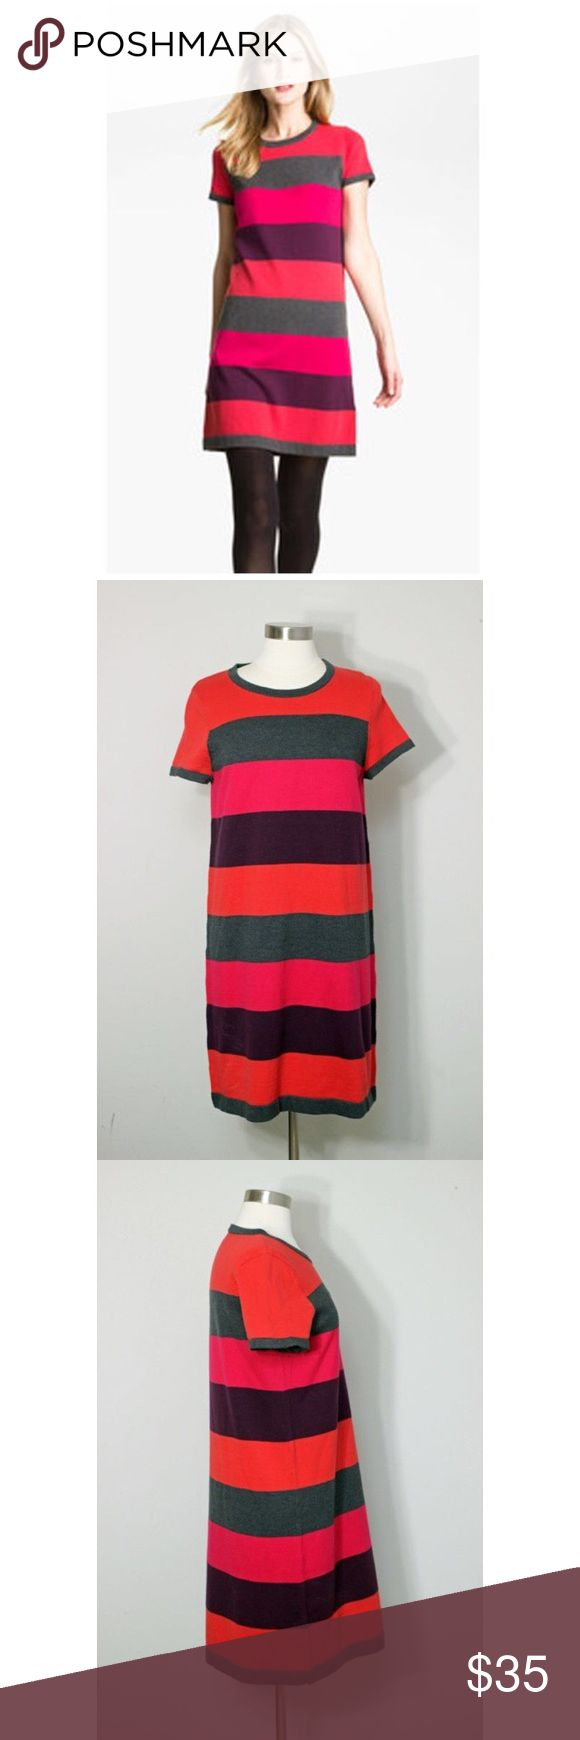 Red dress size 7 37